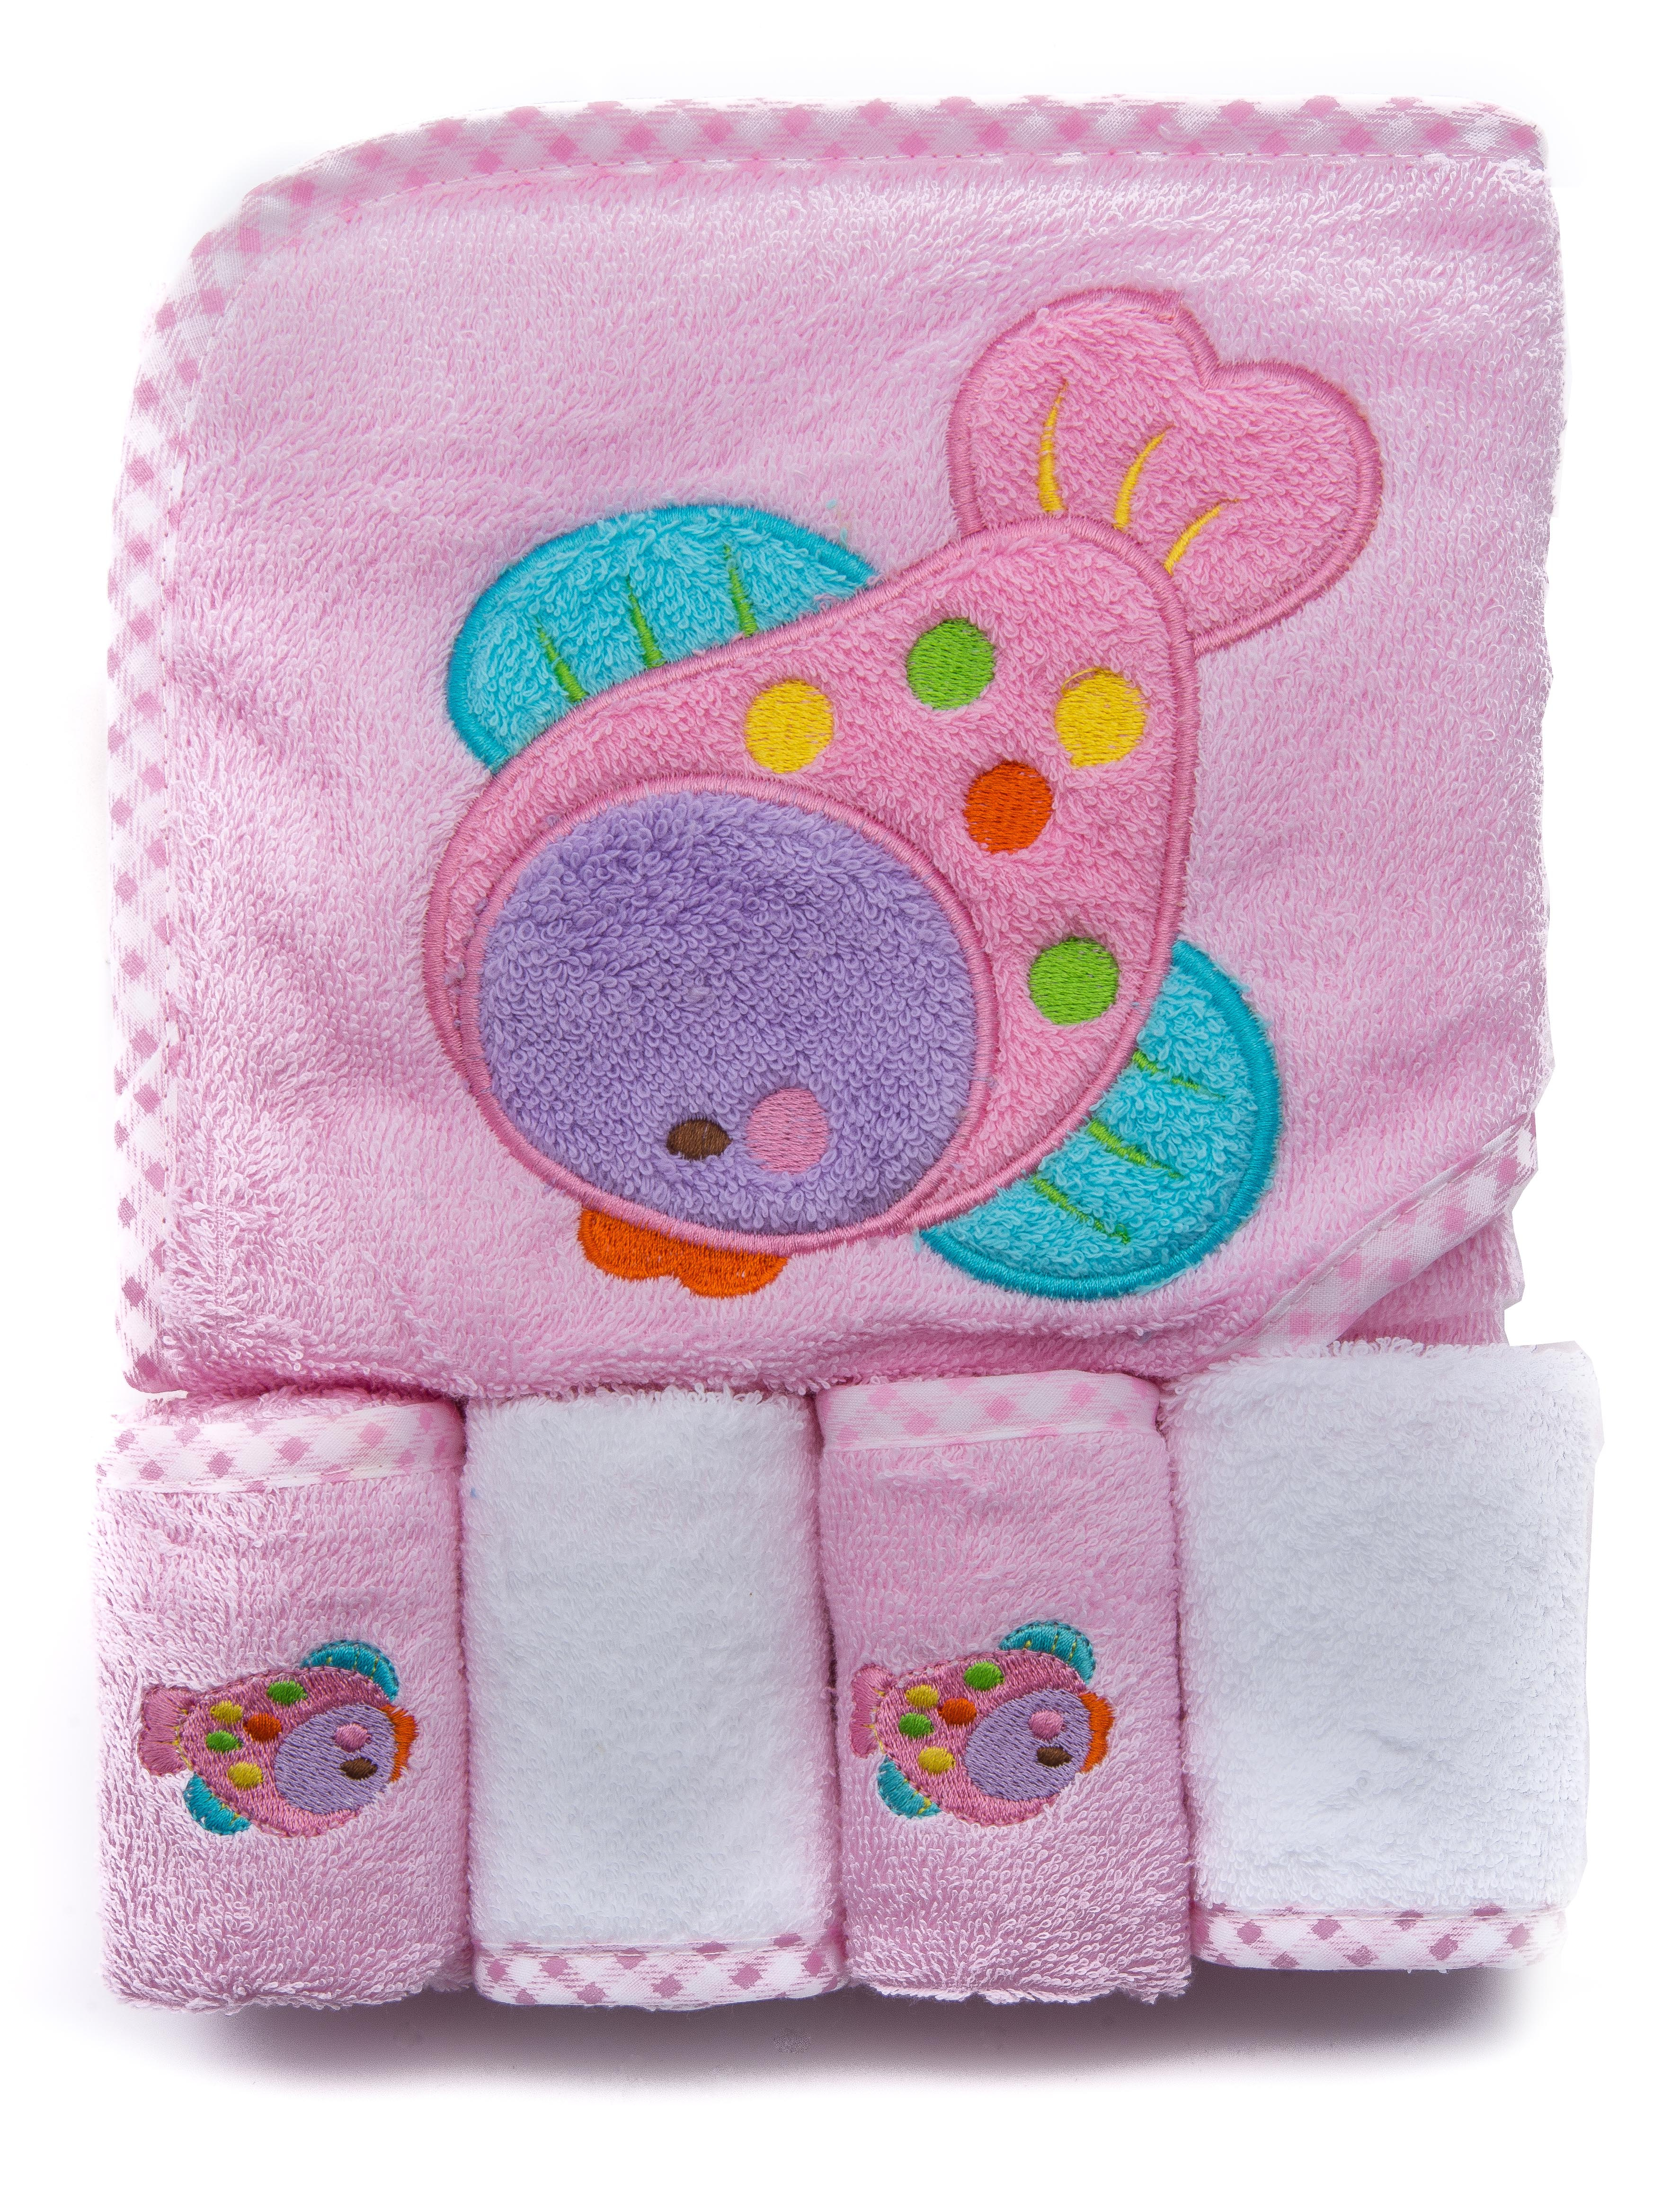 100% Cotton Baby Hooded Terry Bath Towel with 4 Washcloths, Pink by Ely's & Co. by Ely%27s %26 Co